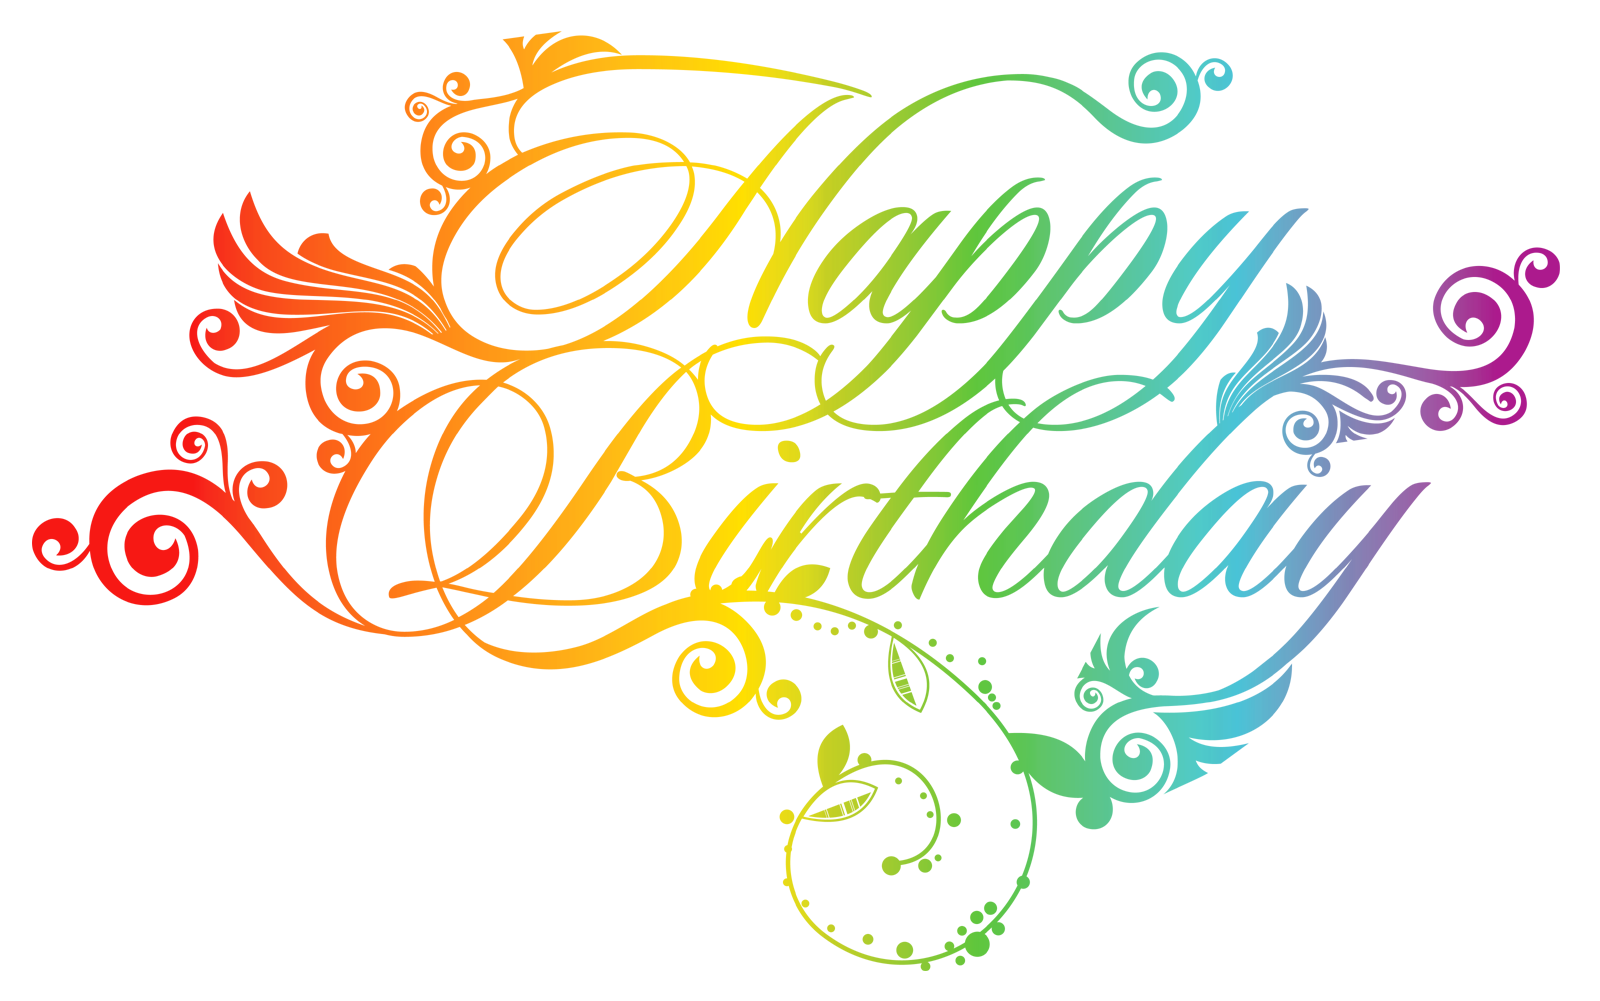 happy birthday png design elements #9243